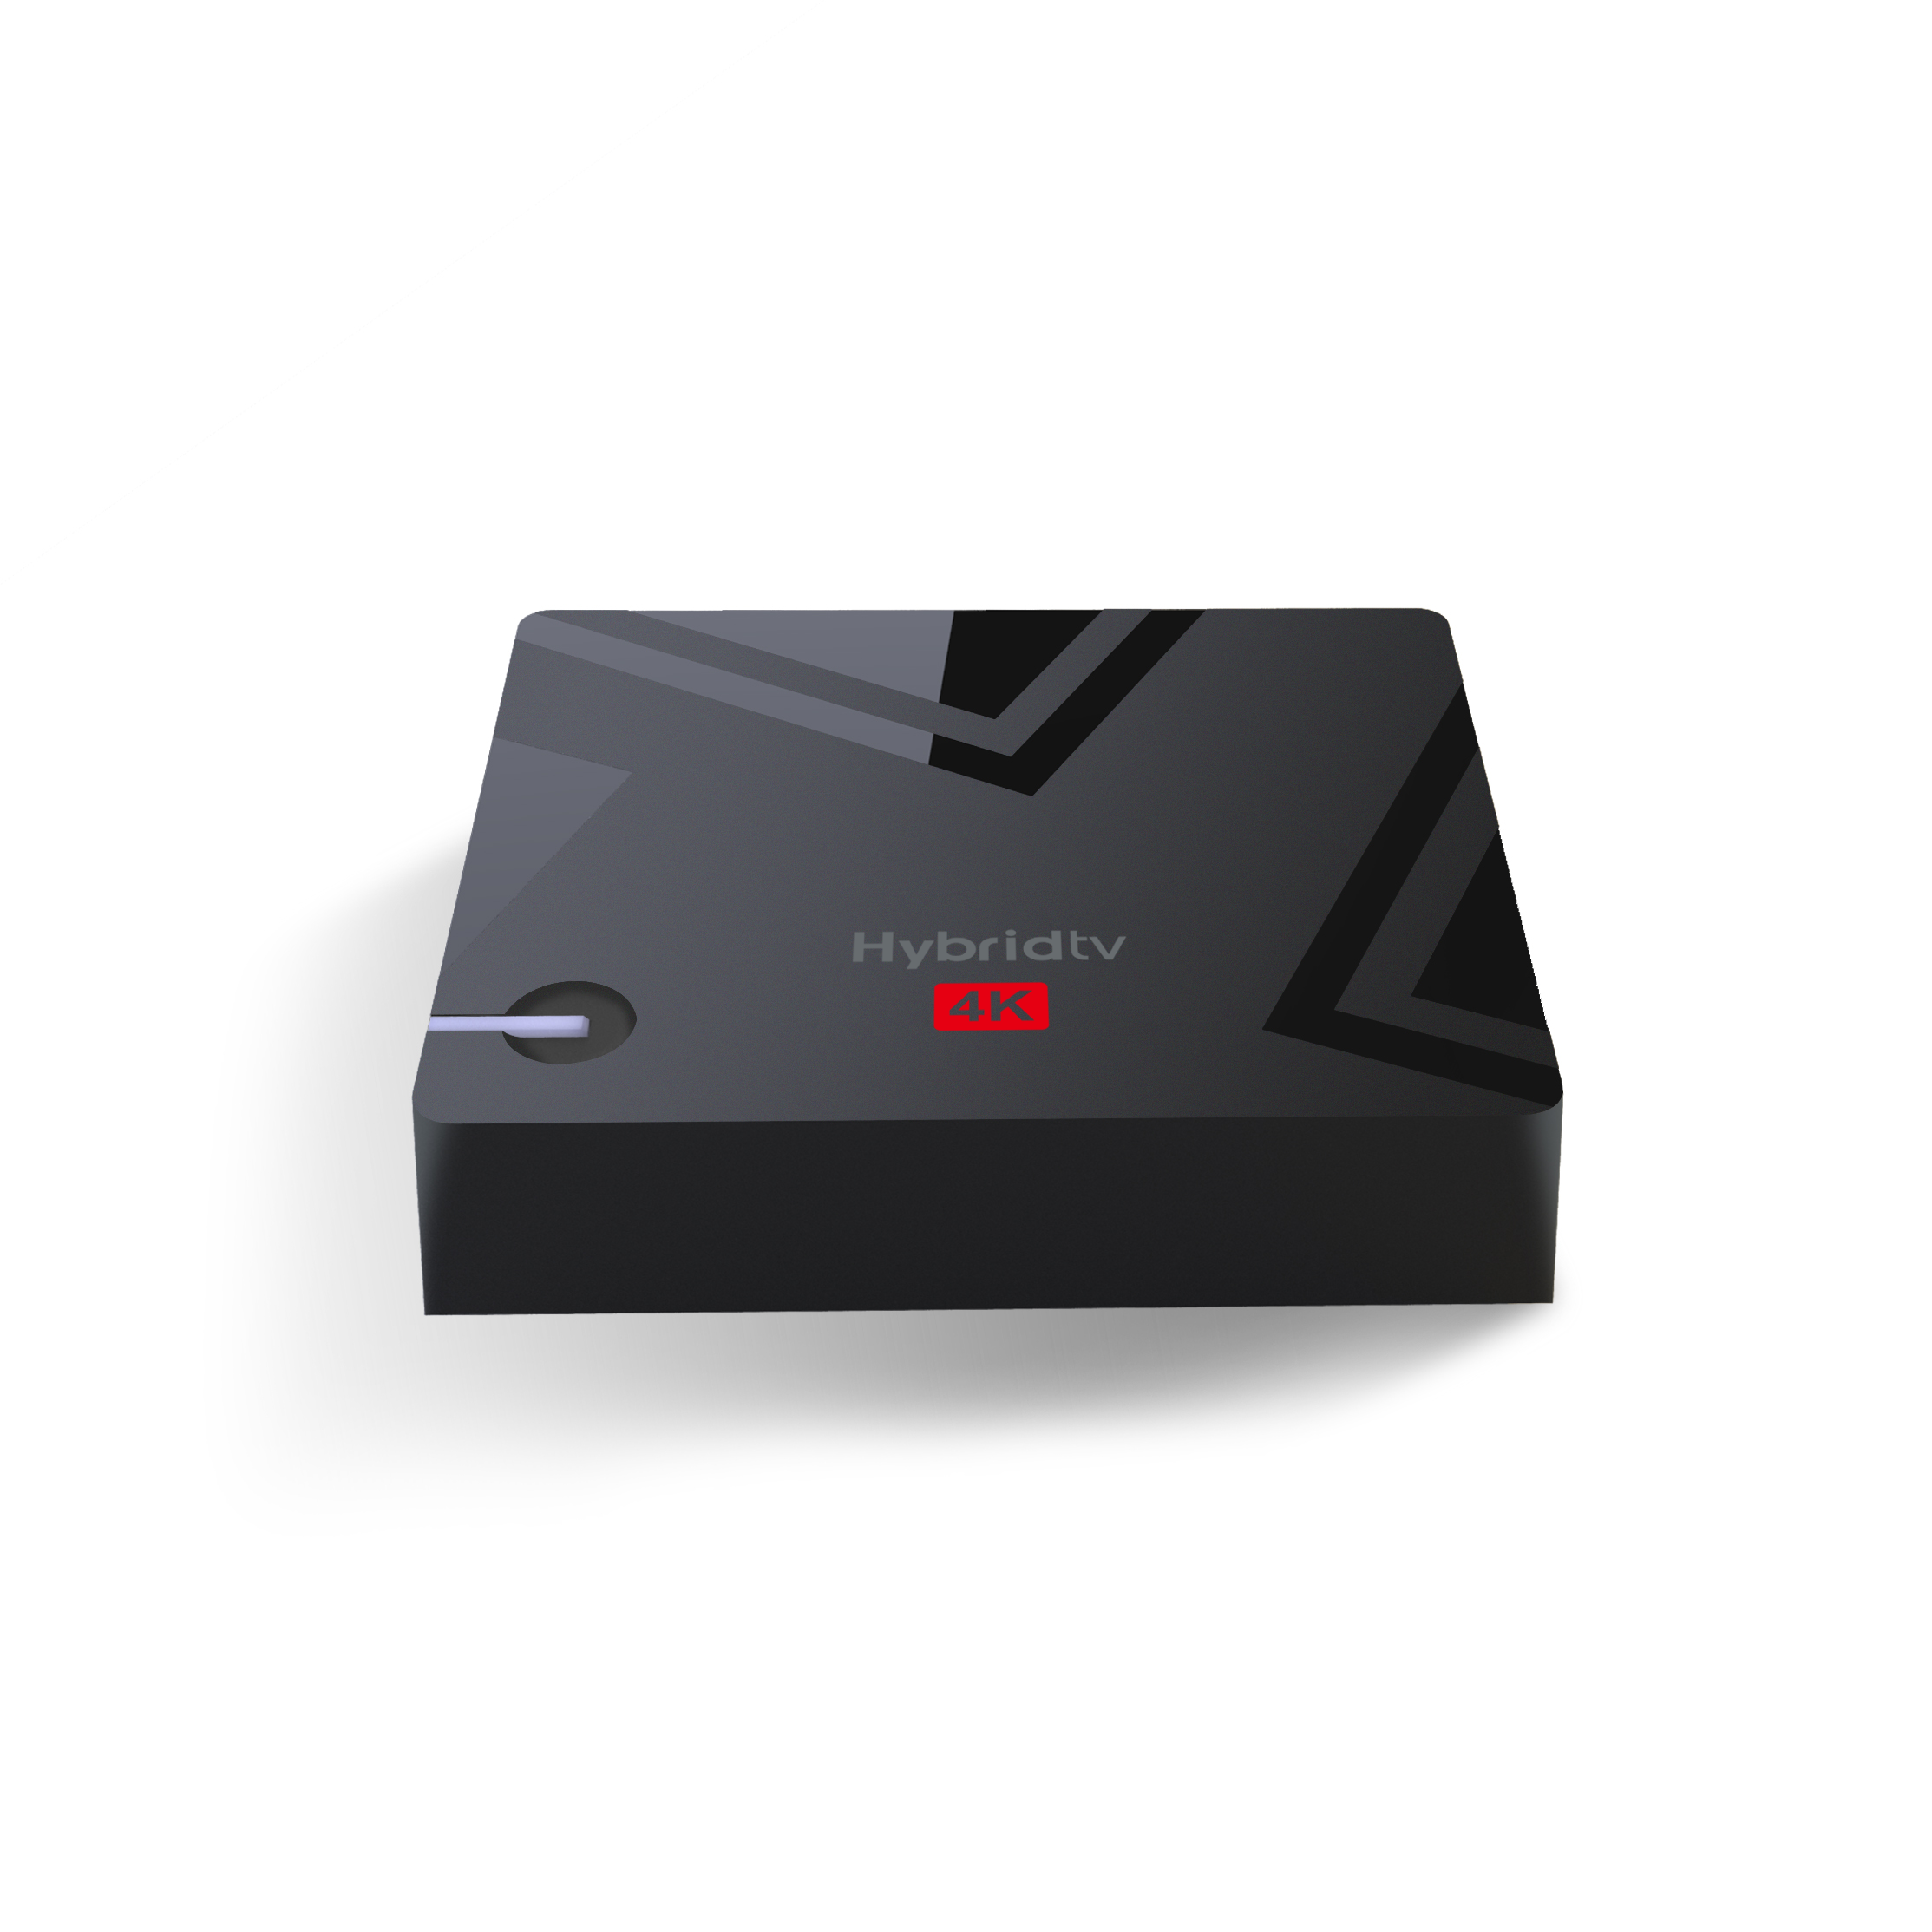 Videostrong OEM Mecool K5 2GB 16GB Personalizza TV Box Android 9.0 Amlogic S905X3 <span class=keywords><strong>DVB</strong></span> S2 T2 C 4K <span class=keywords><strong>Internet</strong></span> Ricevitore Satellitare <span class=keywords><strong>dvb</strong></span> s2